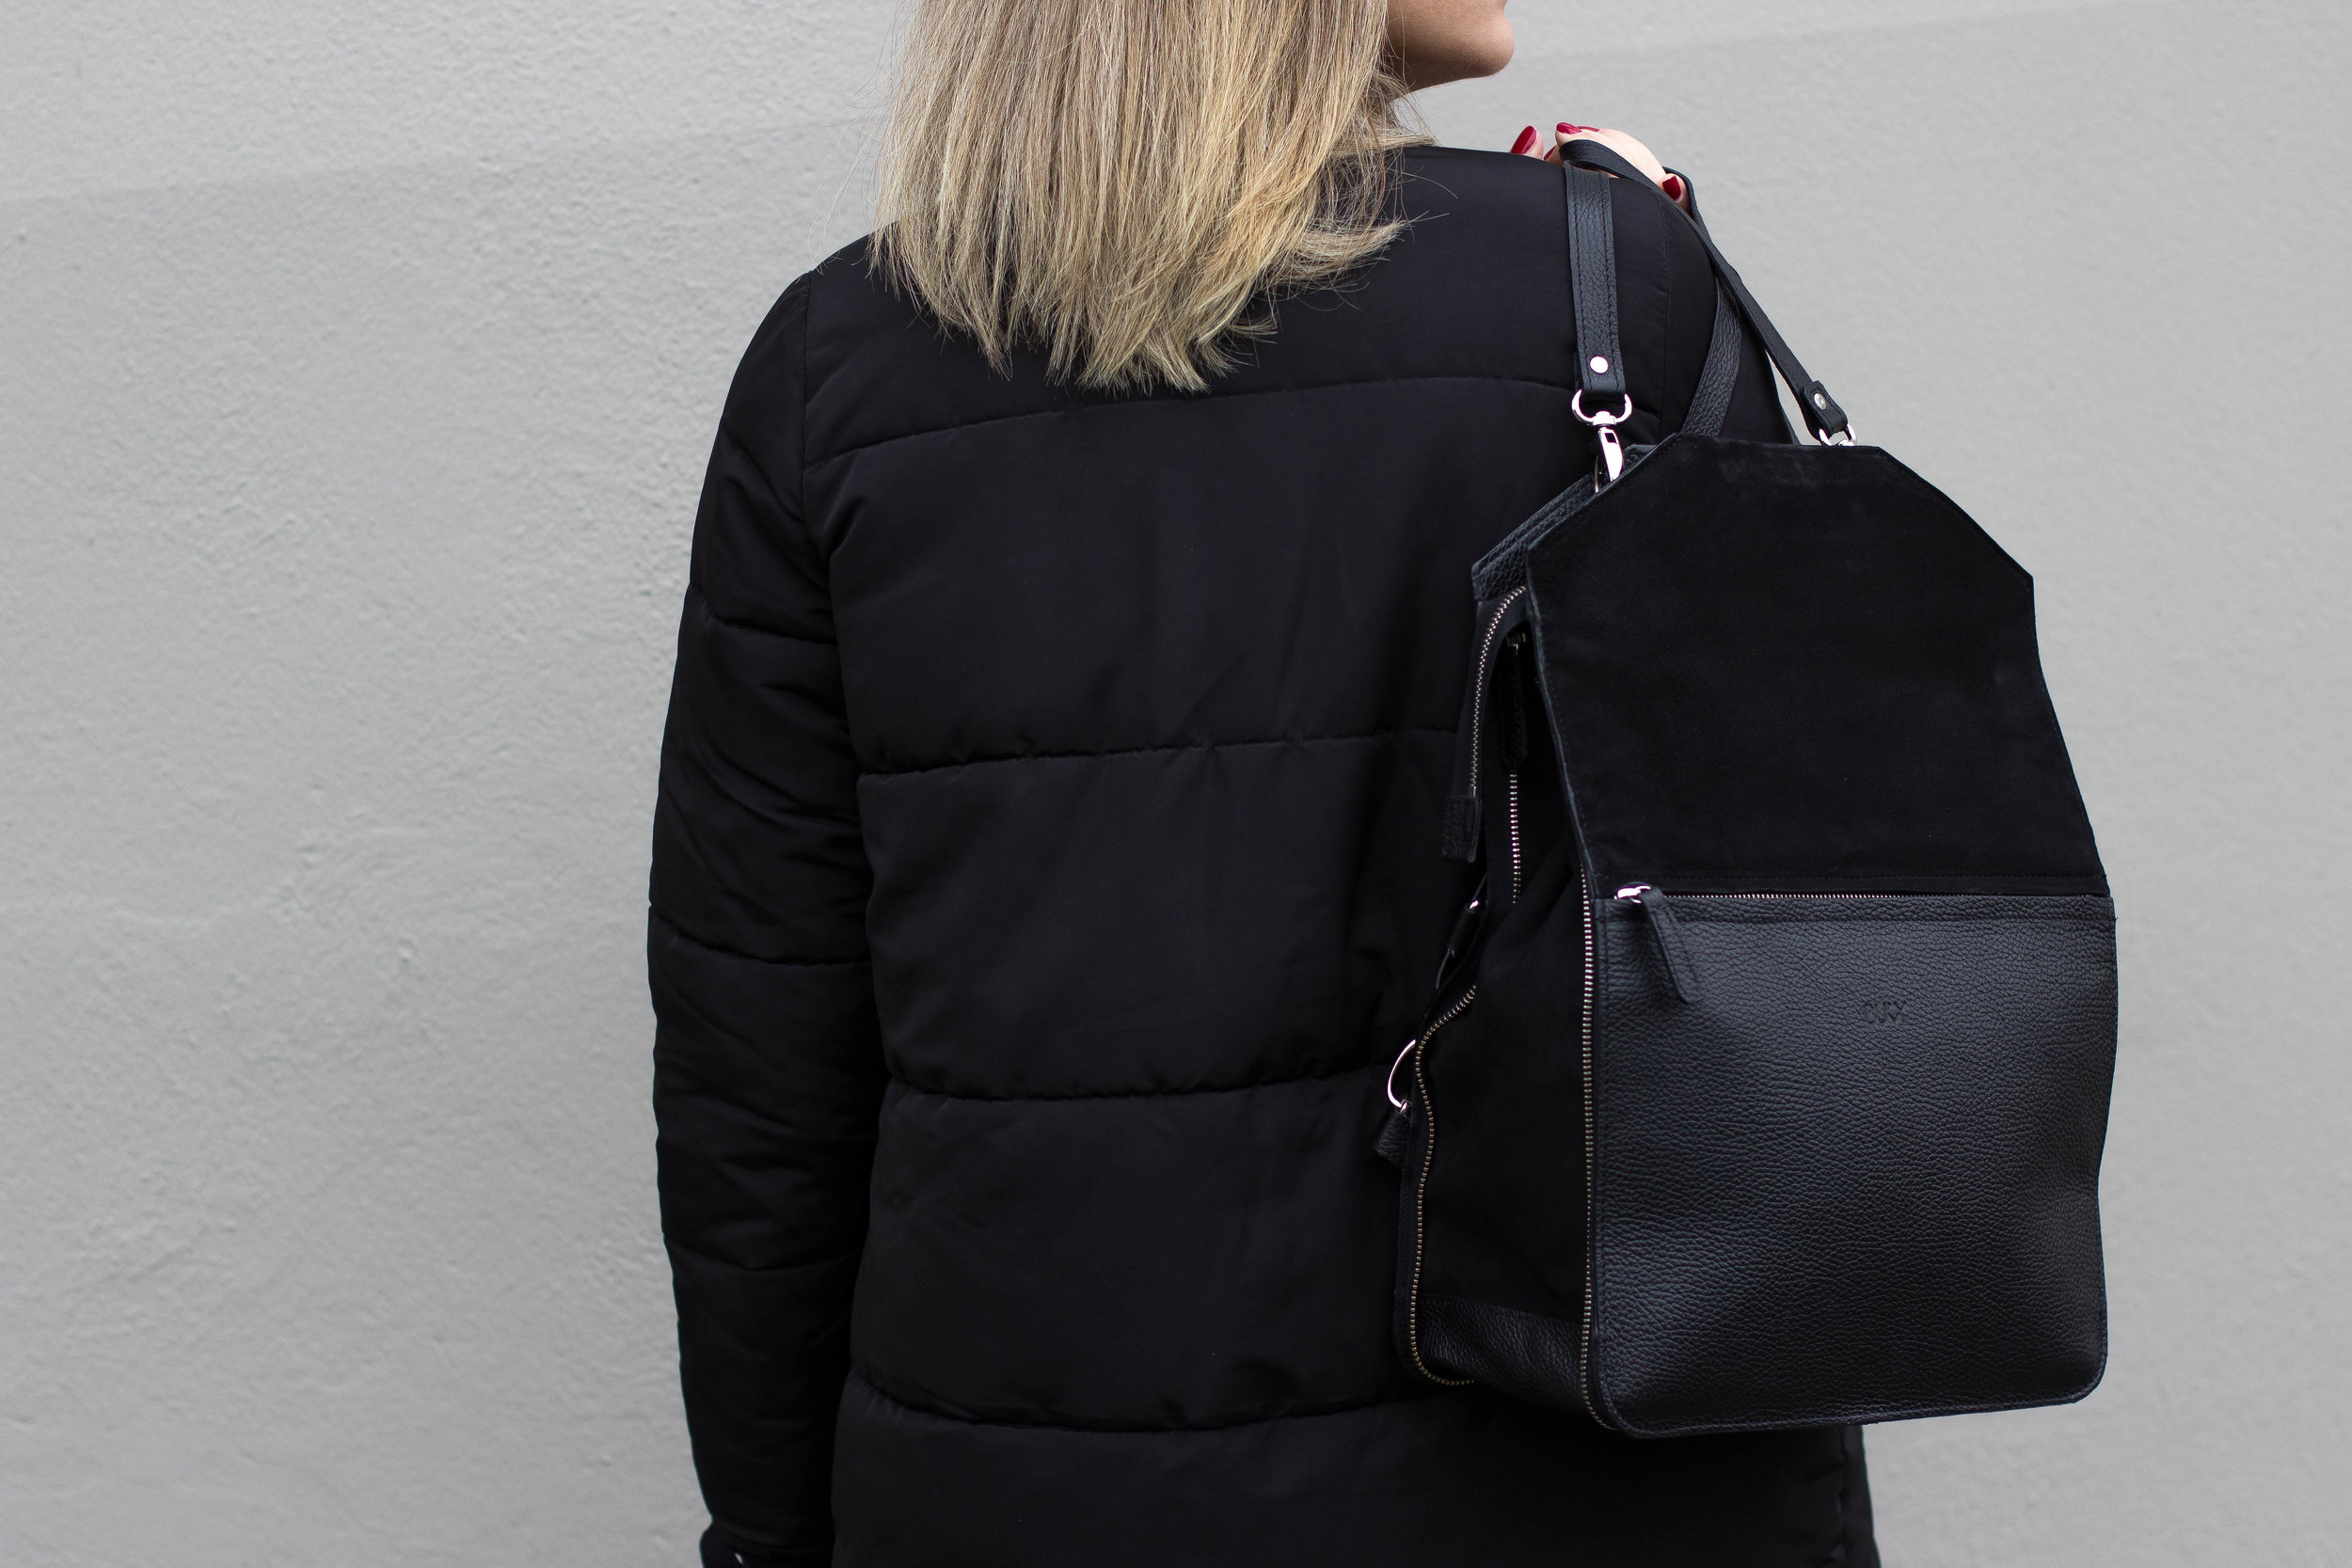 THE MINIMALIST GUIDE TO STYLING THE BUKVY BAG IN 6 DIFFERENT